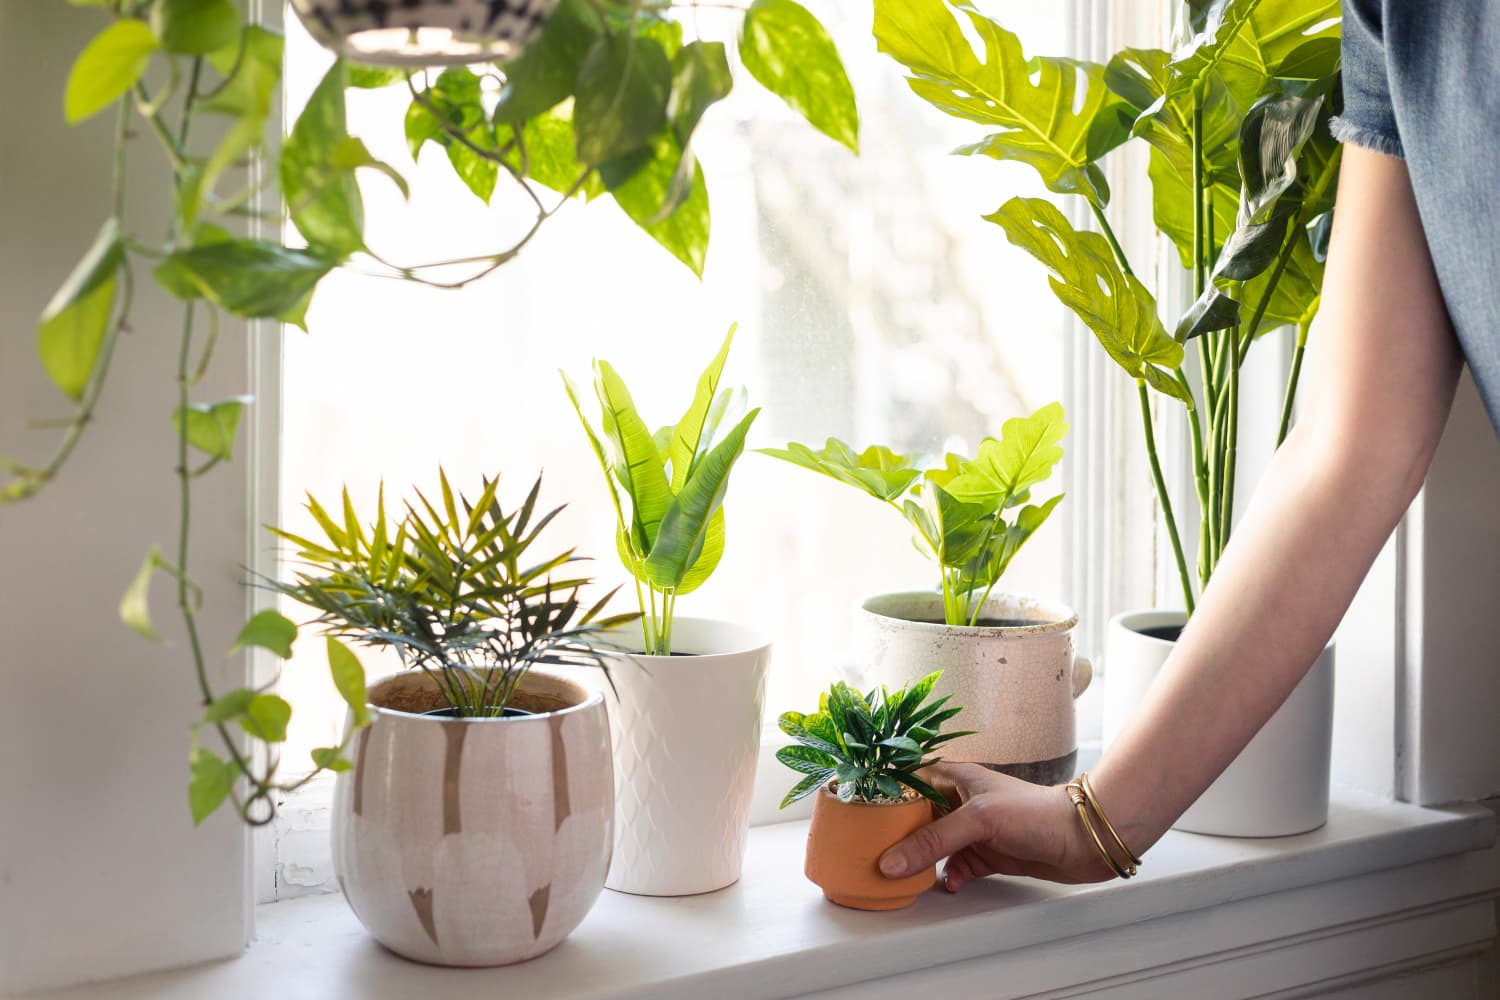 Hydrogen Peroxide Can Help Cure Your Sick Houseplants — Here's What You Need to Know